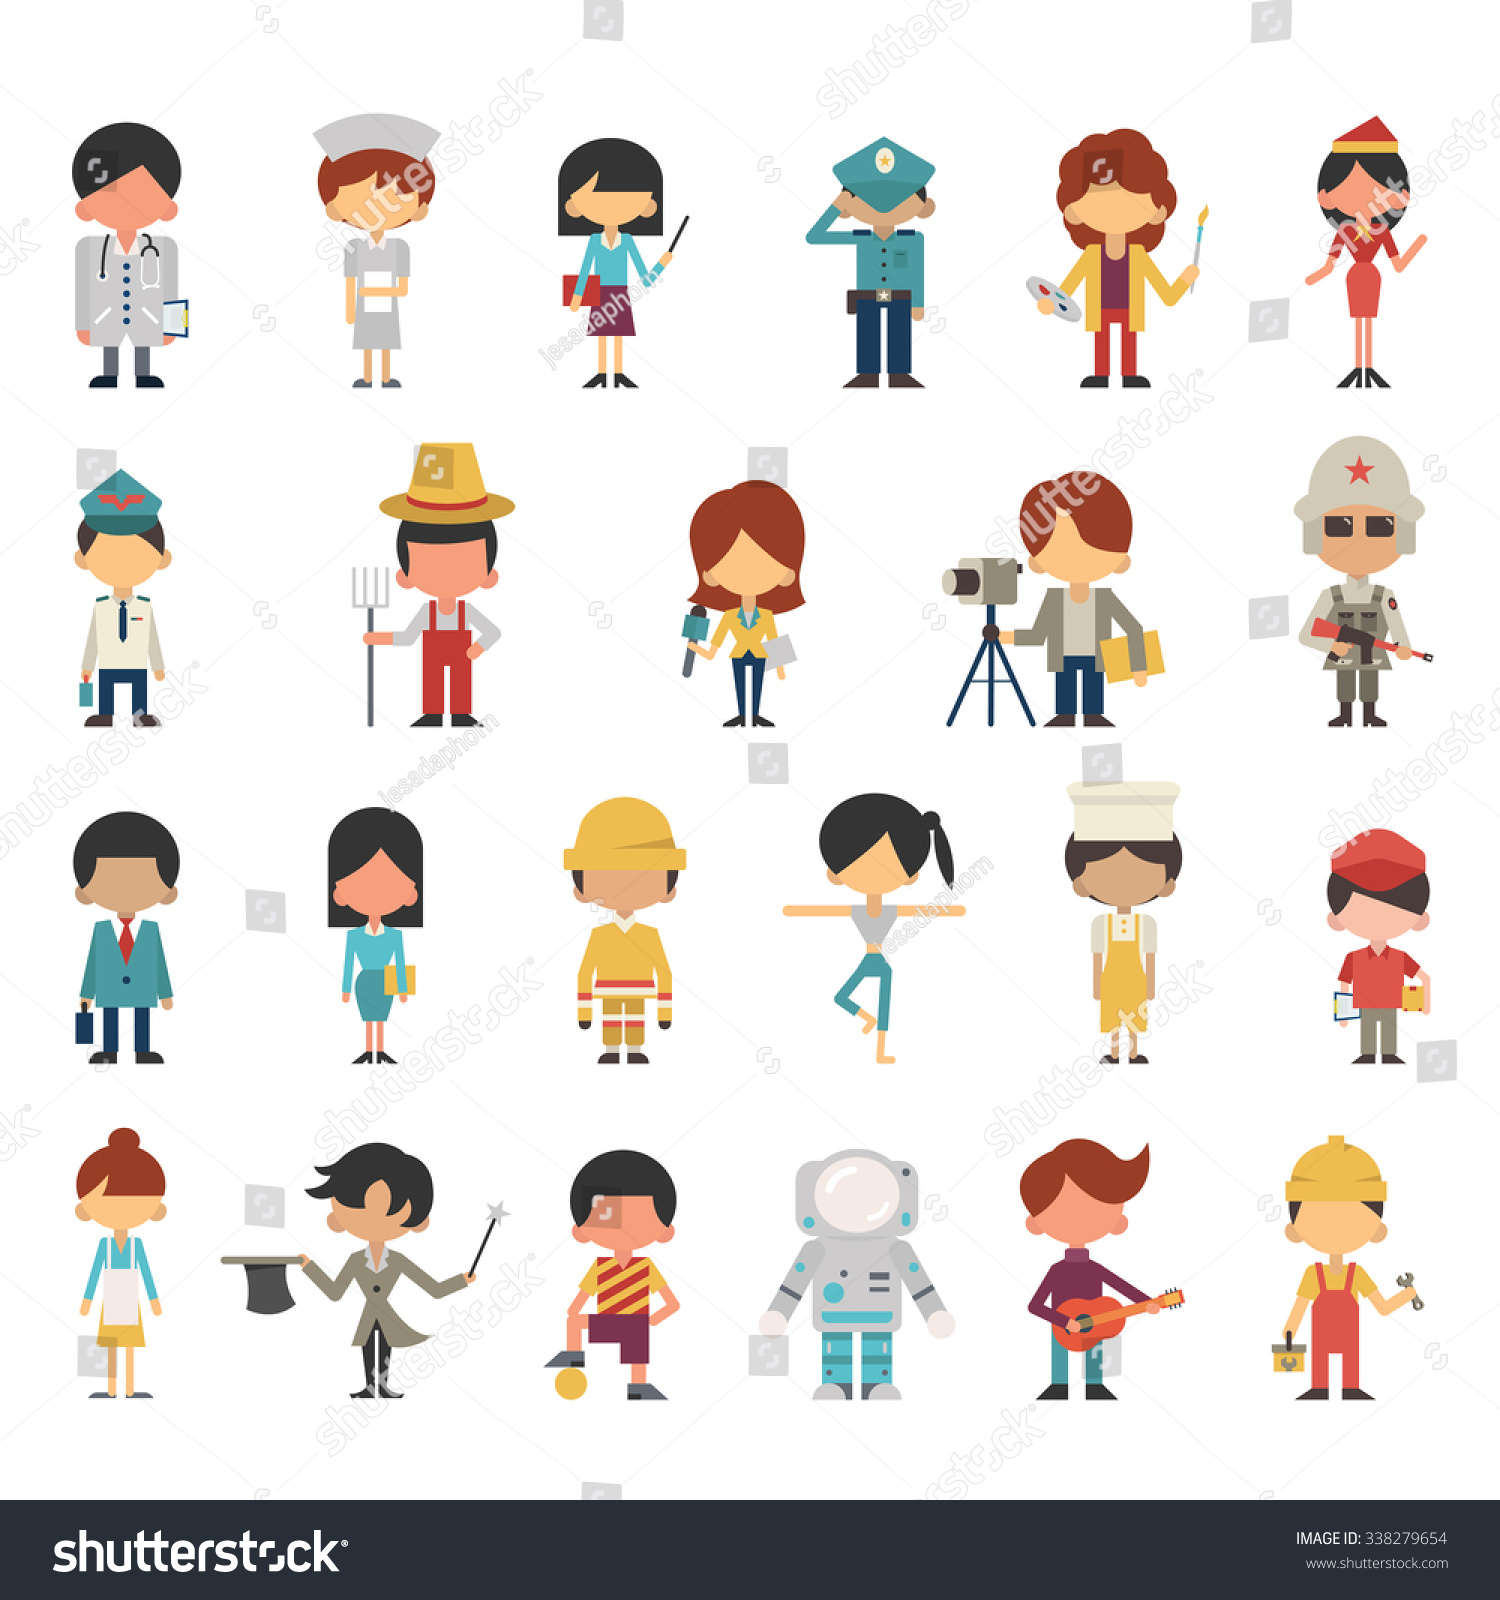 Illustration Characters Kids Children Various Occupations